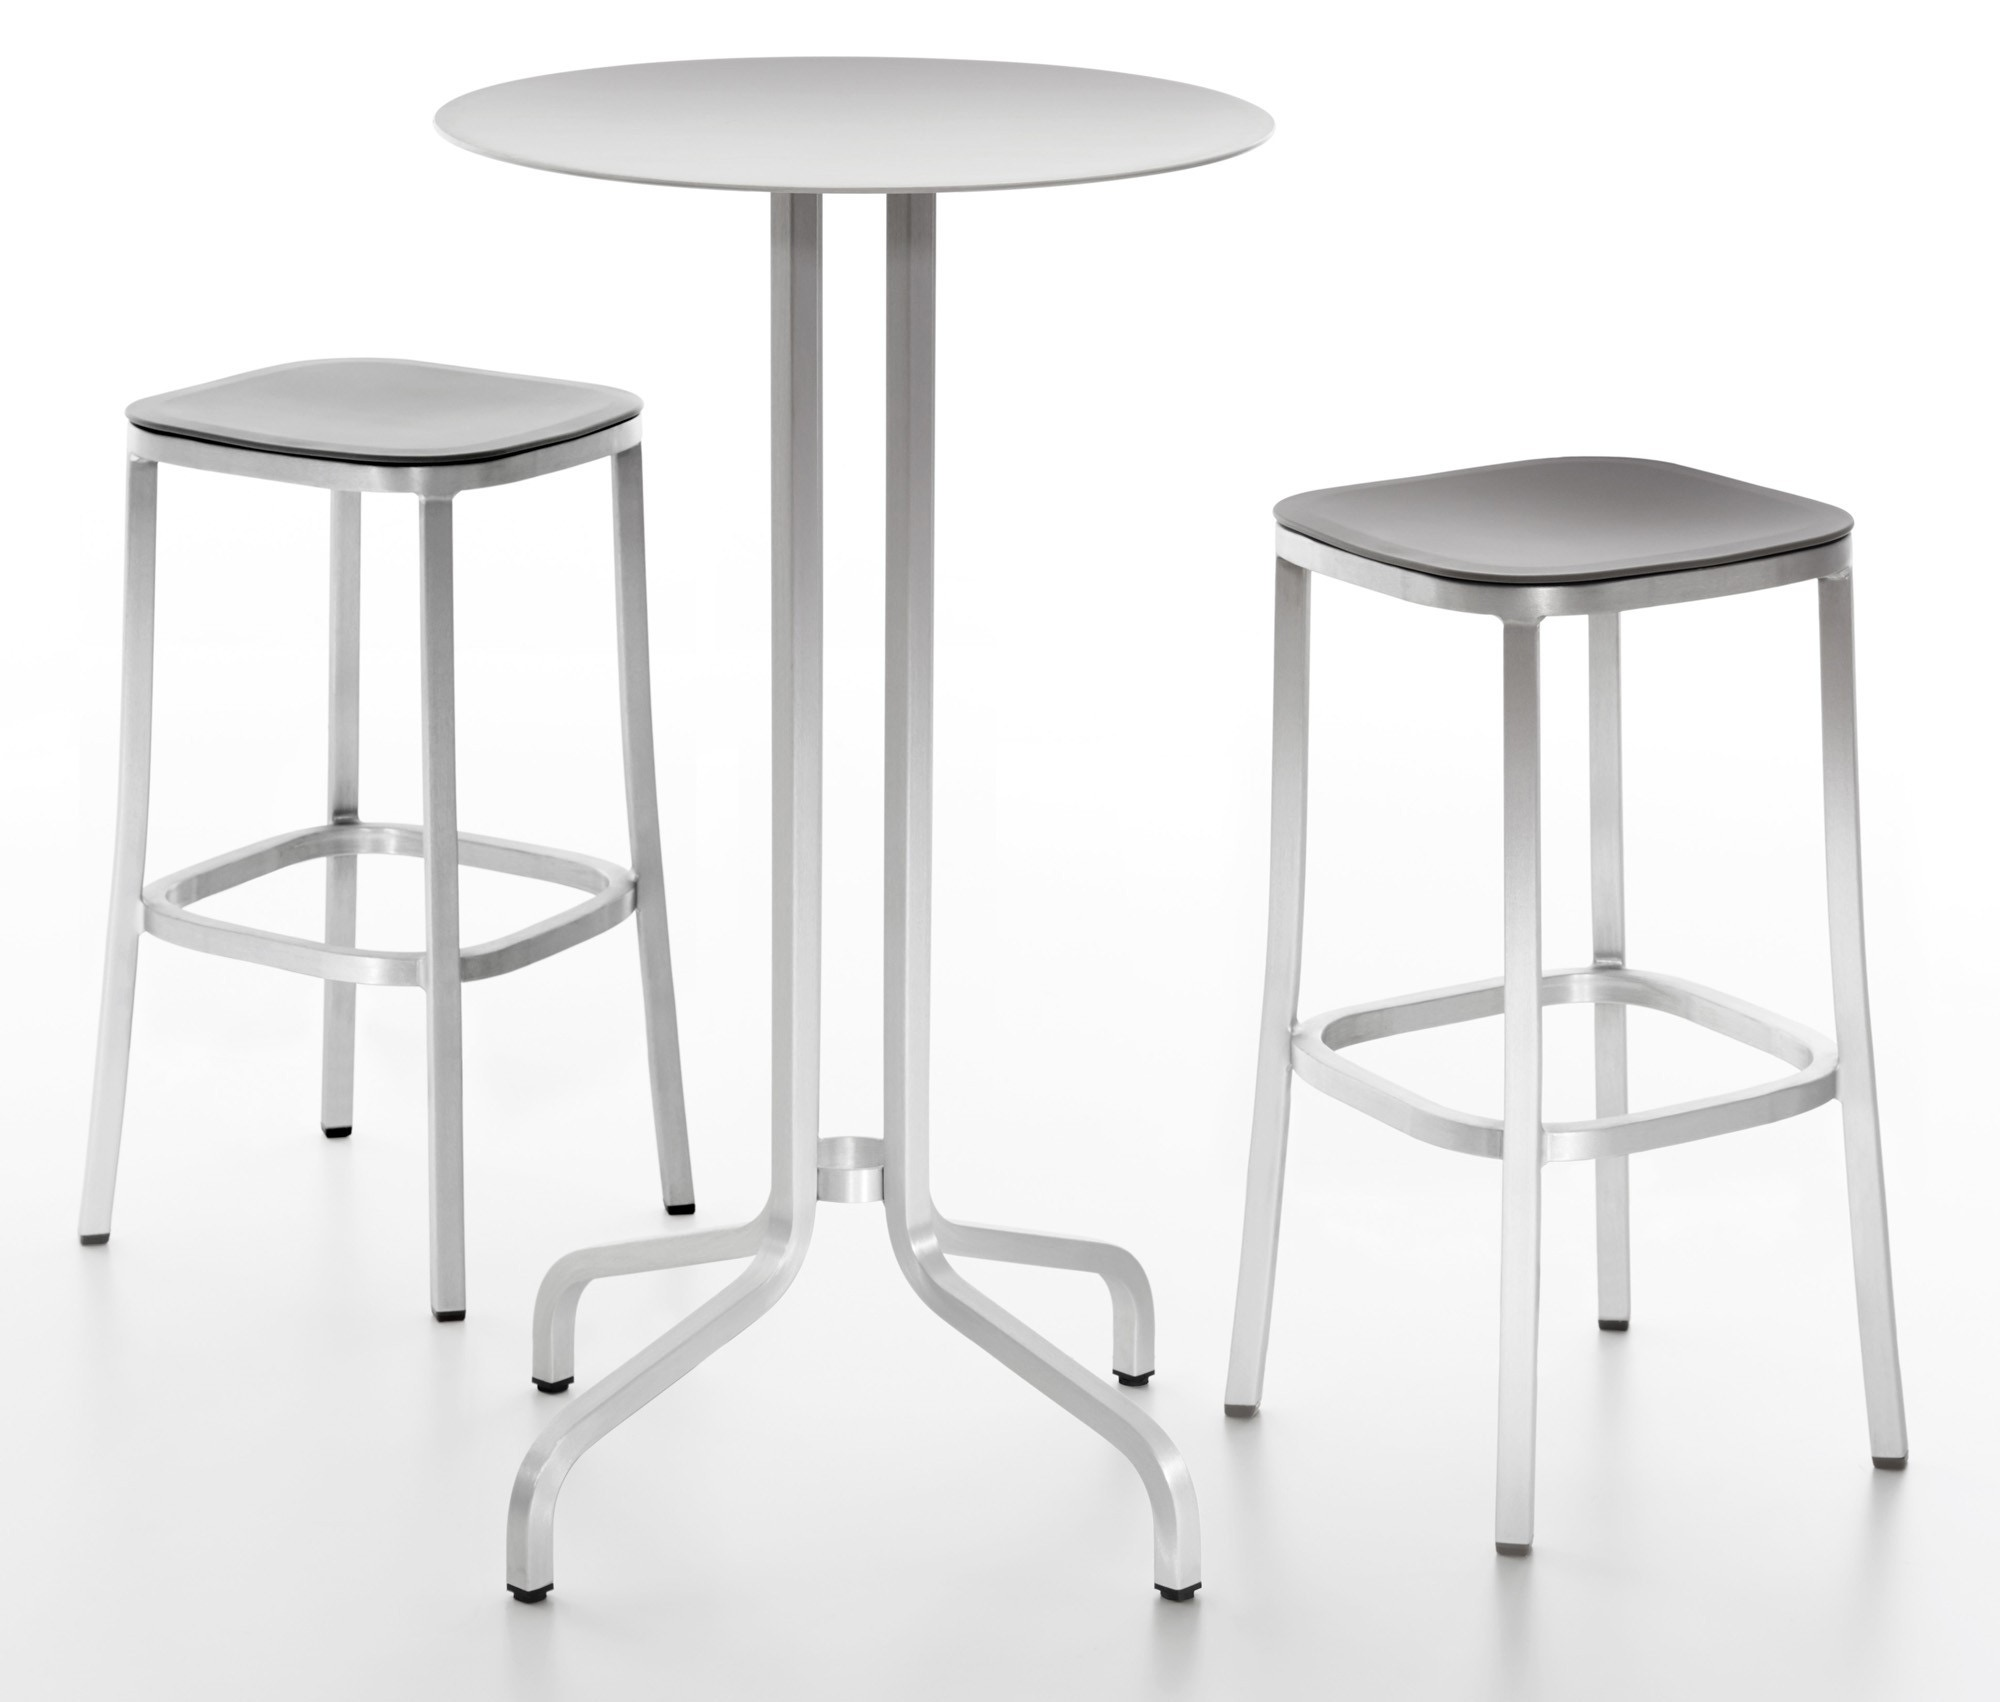 Emeco 1 Inch Bar Table By Jasper Morrison, Round Or Square